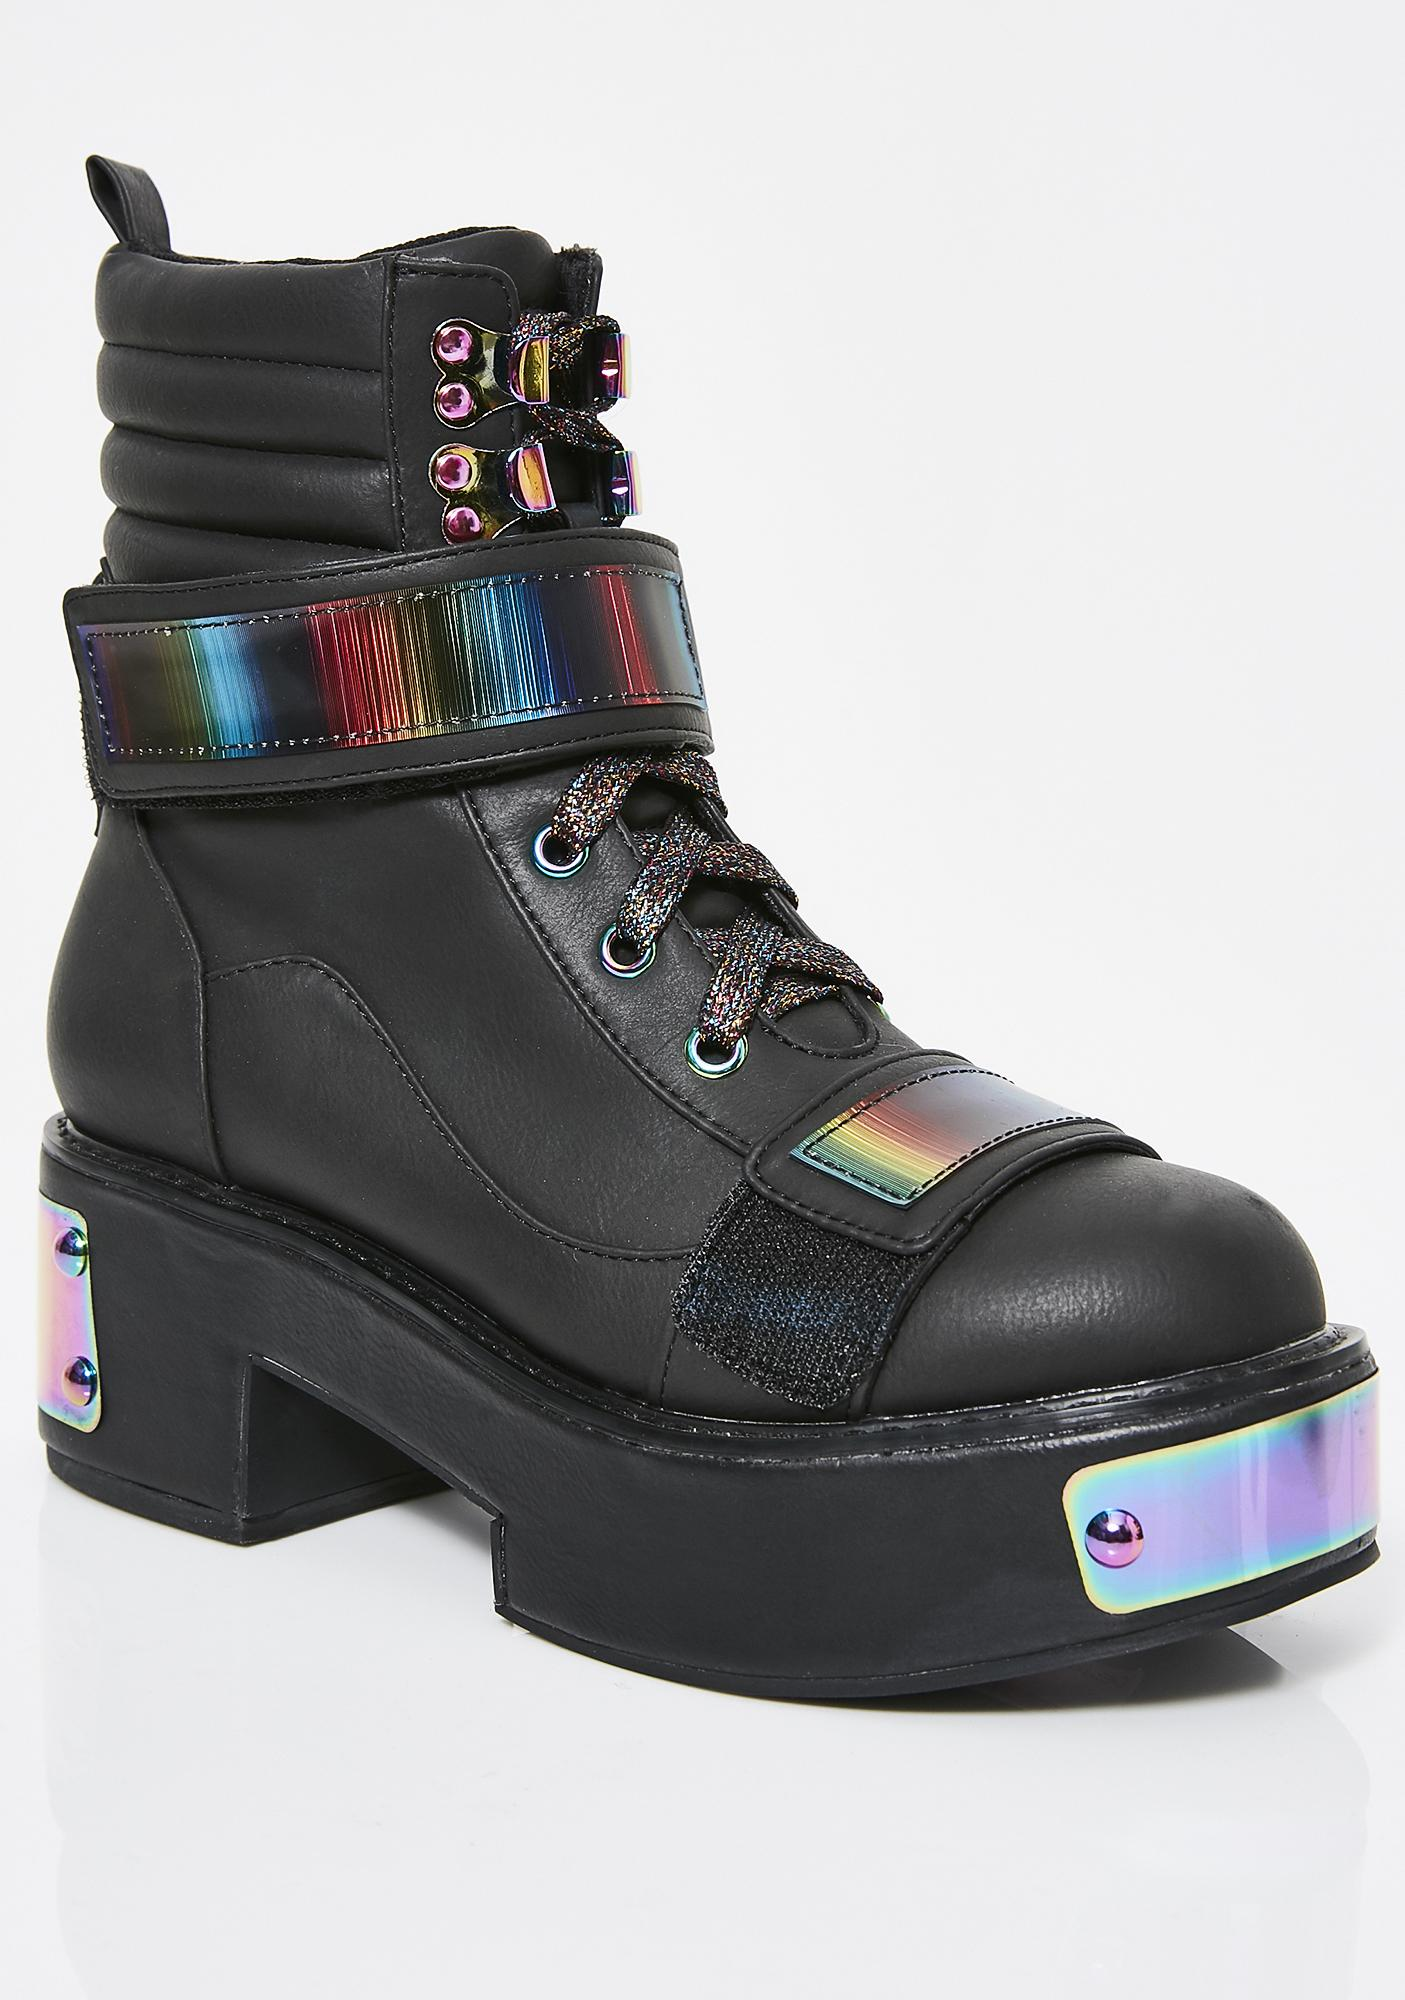 Club Exx Dark Rainbow Anodized Boots